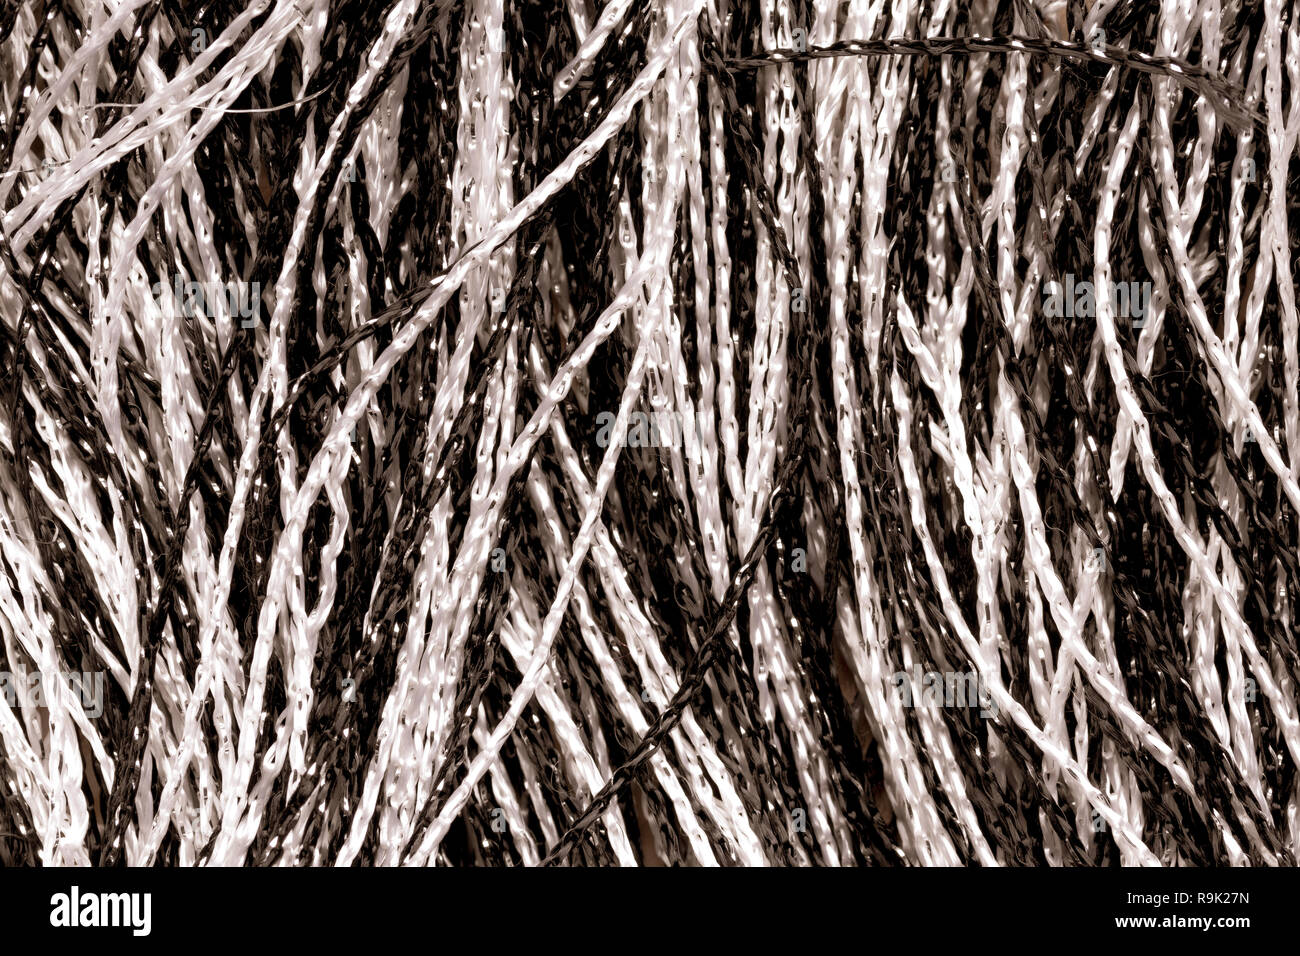 Fragment of a creative striped black and white fabric as a background texture an interesting design with a beautiful focus